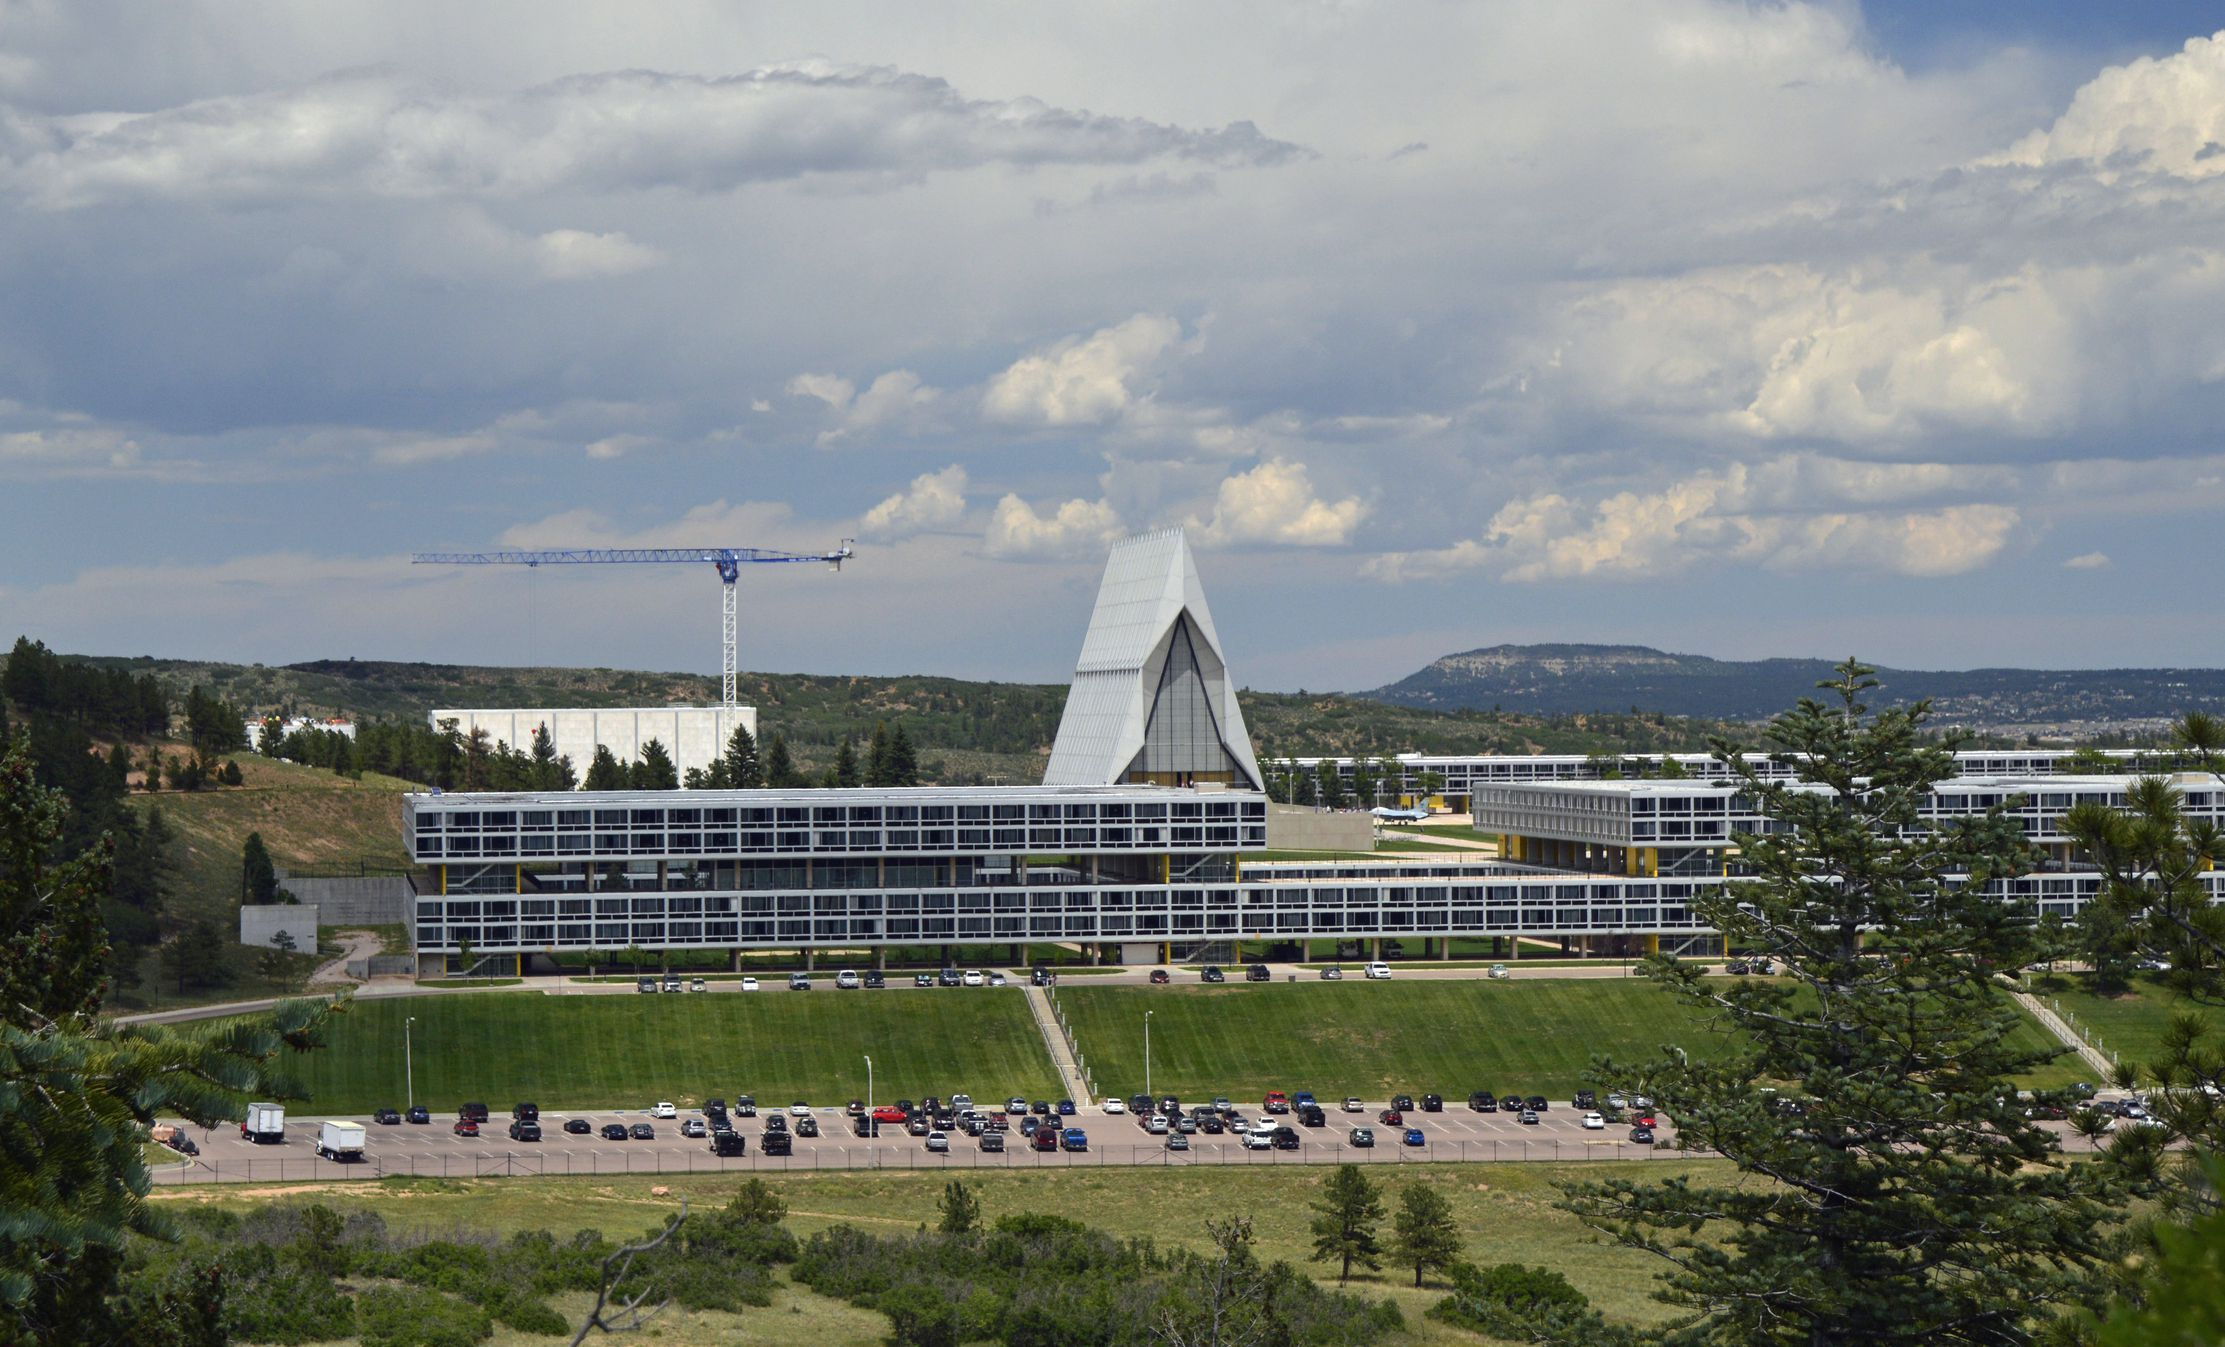 How Competitive Is U.S. Air Force Academy's Admissions